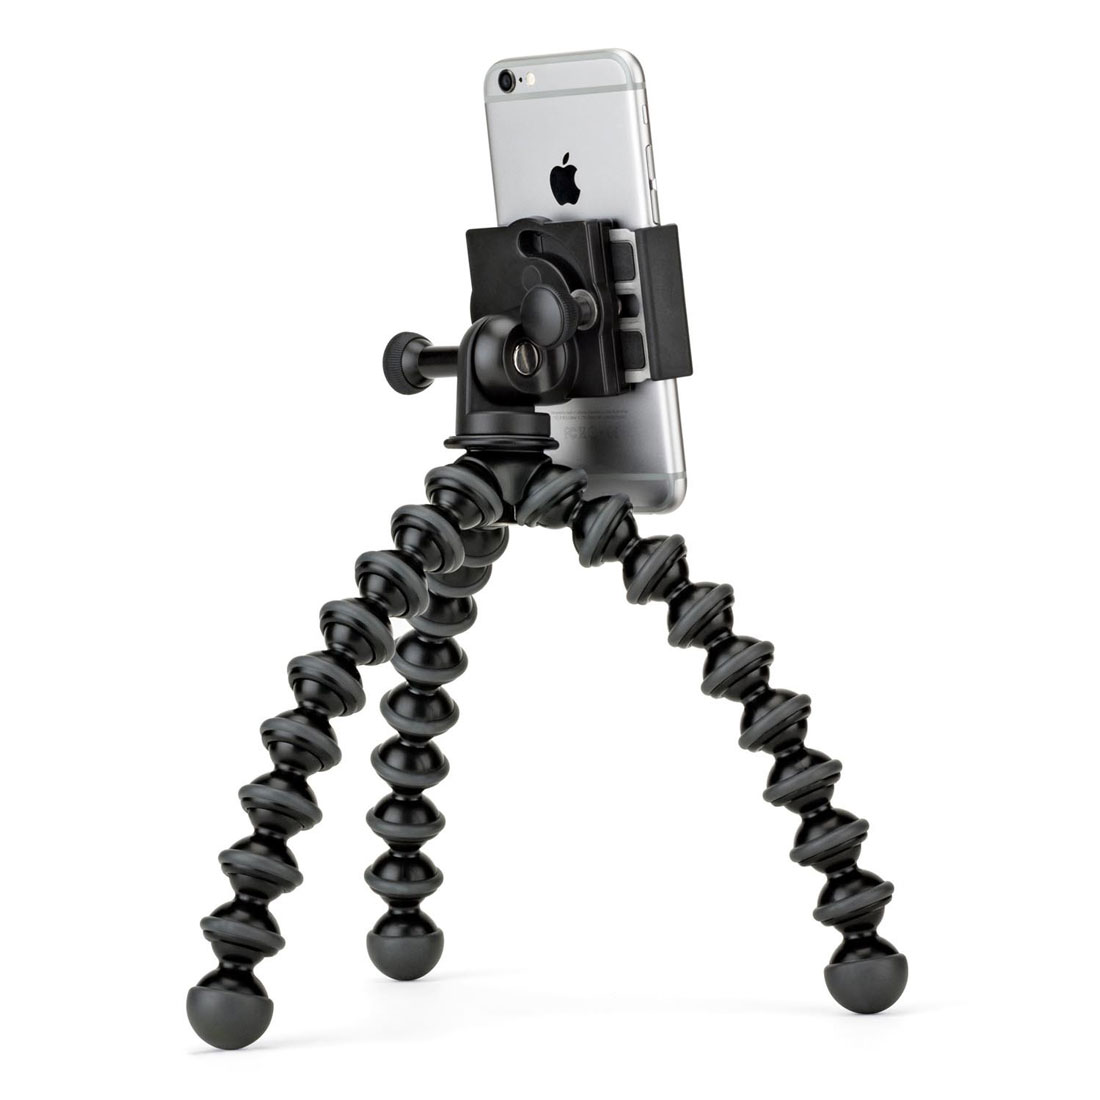 Support Joby GripTight PRO Phone avec son trépied GorillaPod.